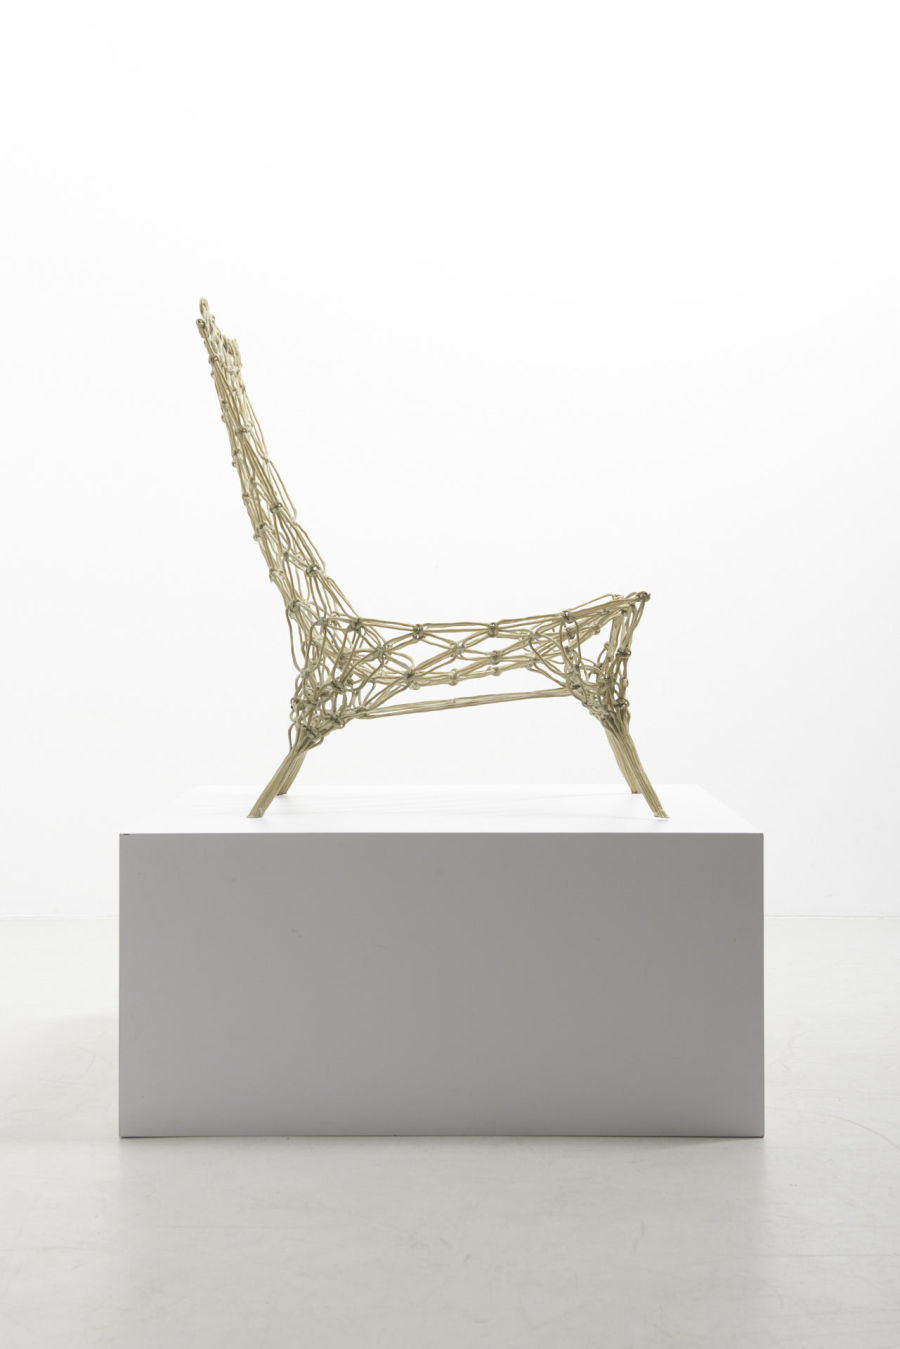 modestfurniture-vintage-2902-marcel-wanders-knotted-chair03